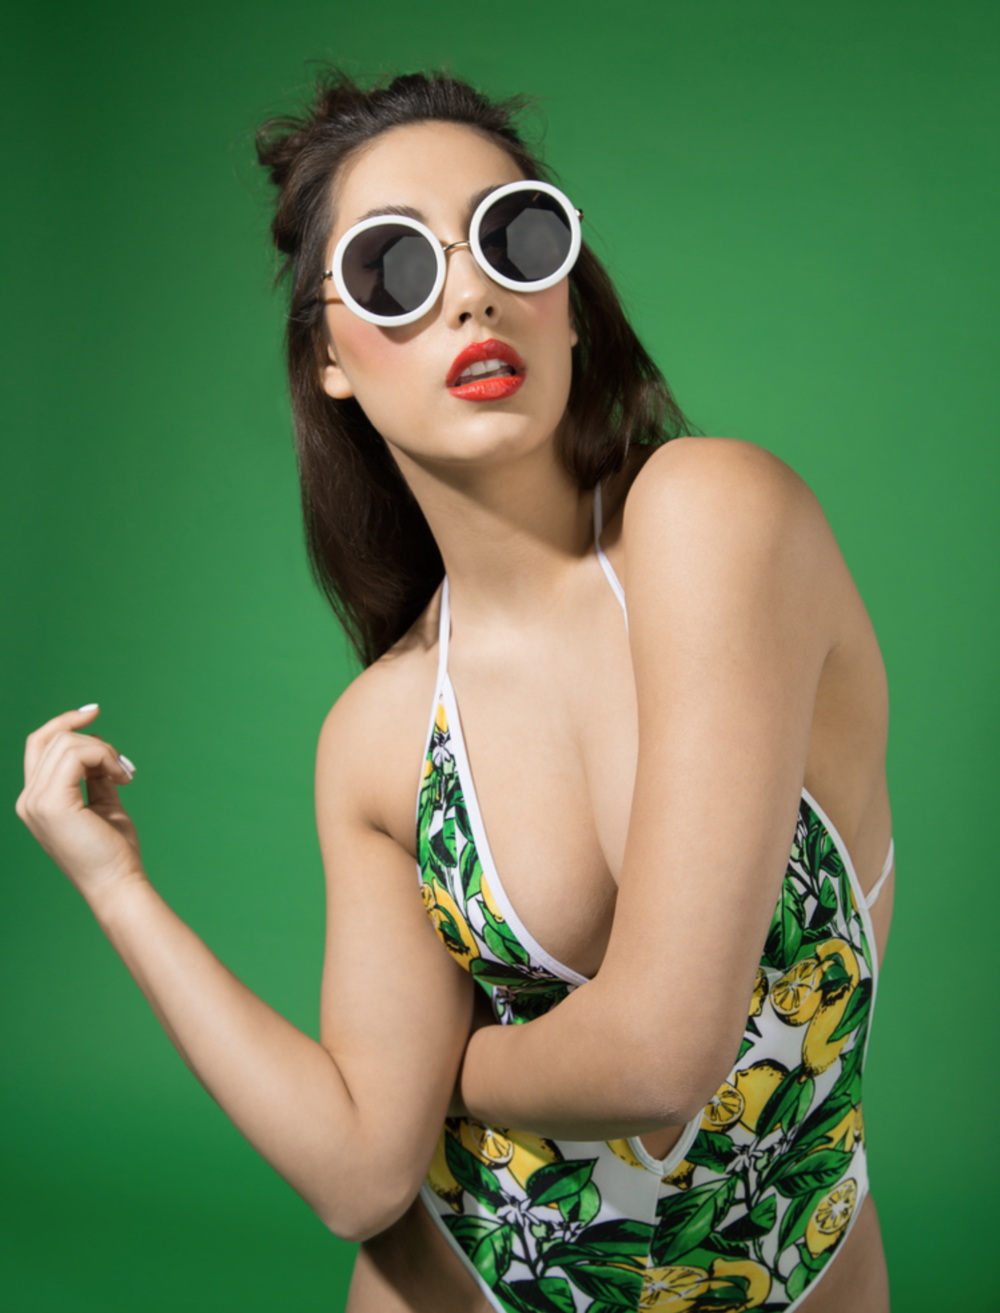 April_Staso_photography_Beach_Pool_Photo_Los Angeles_Fashion_photography_LA_Fashion_Photographer.png